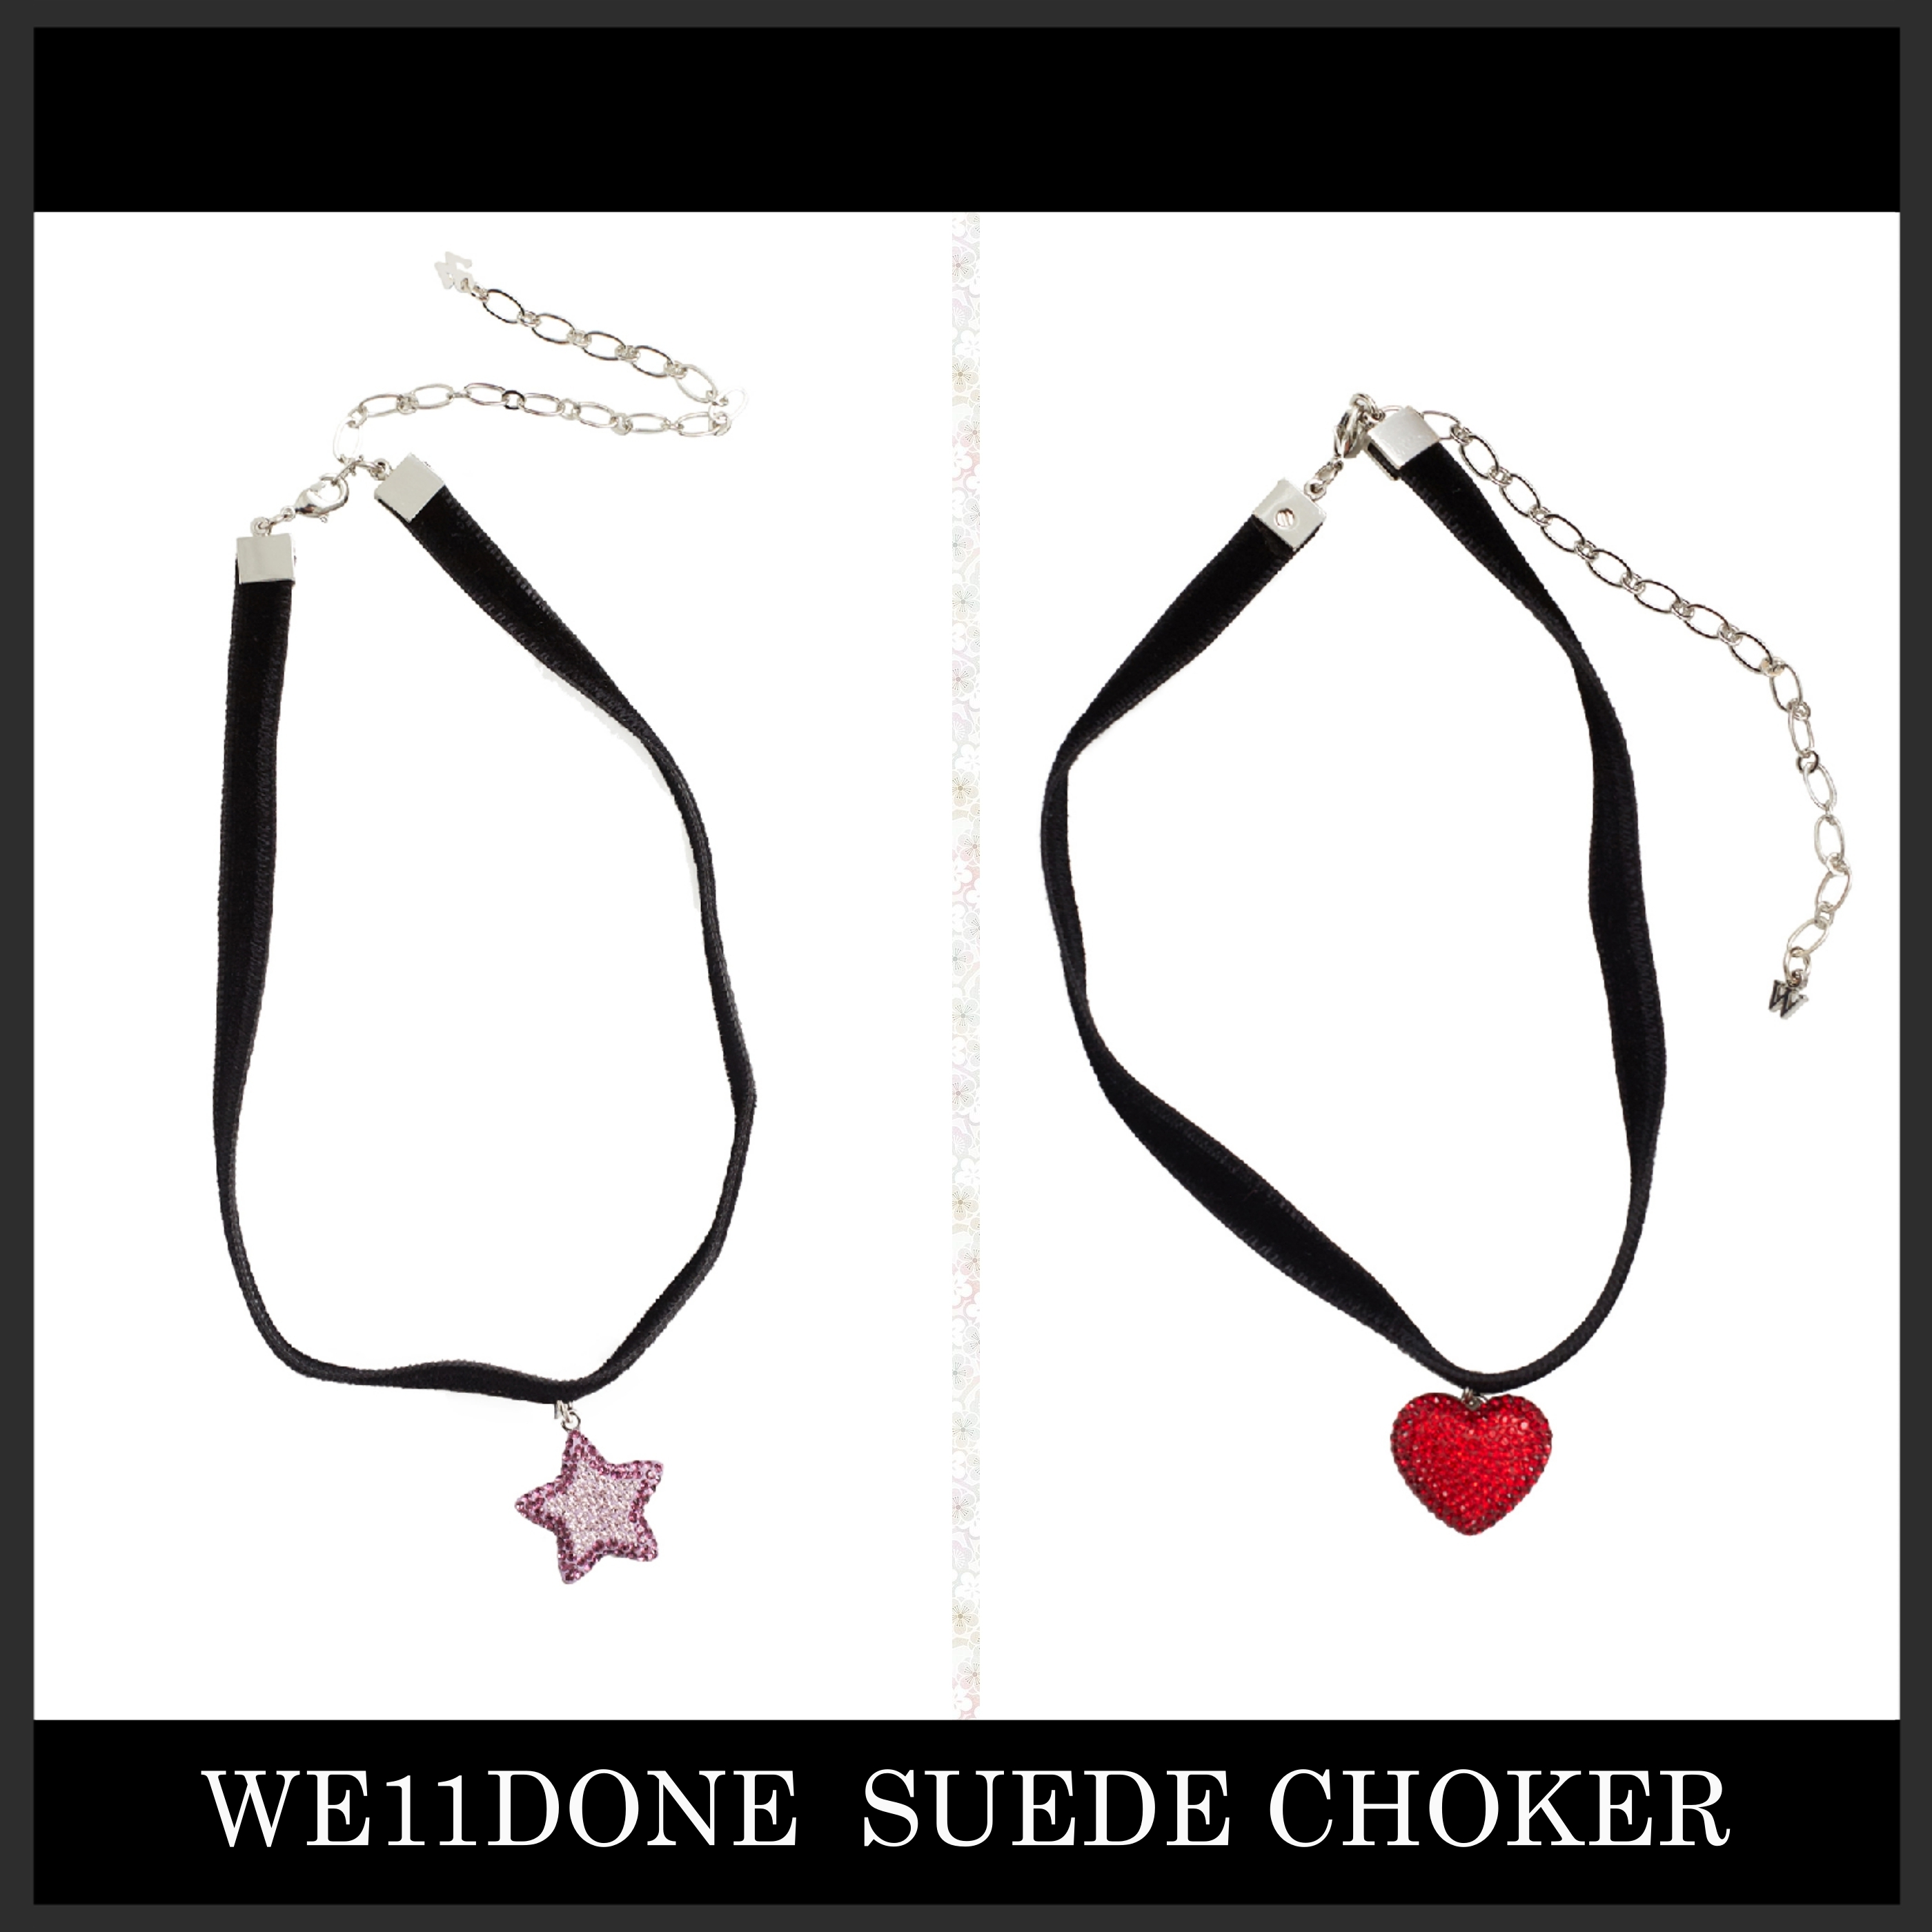 GD着用で人気上昇ブランド We11Done suede choker チョーカー